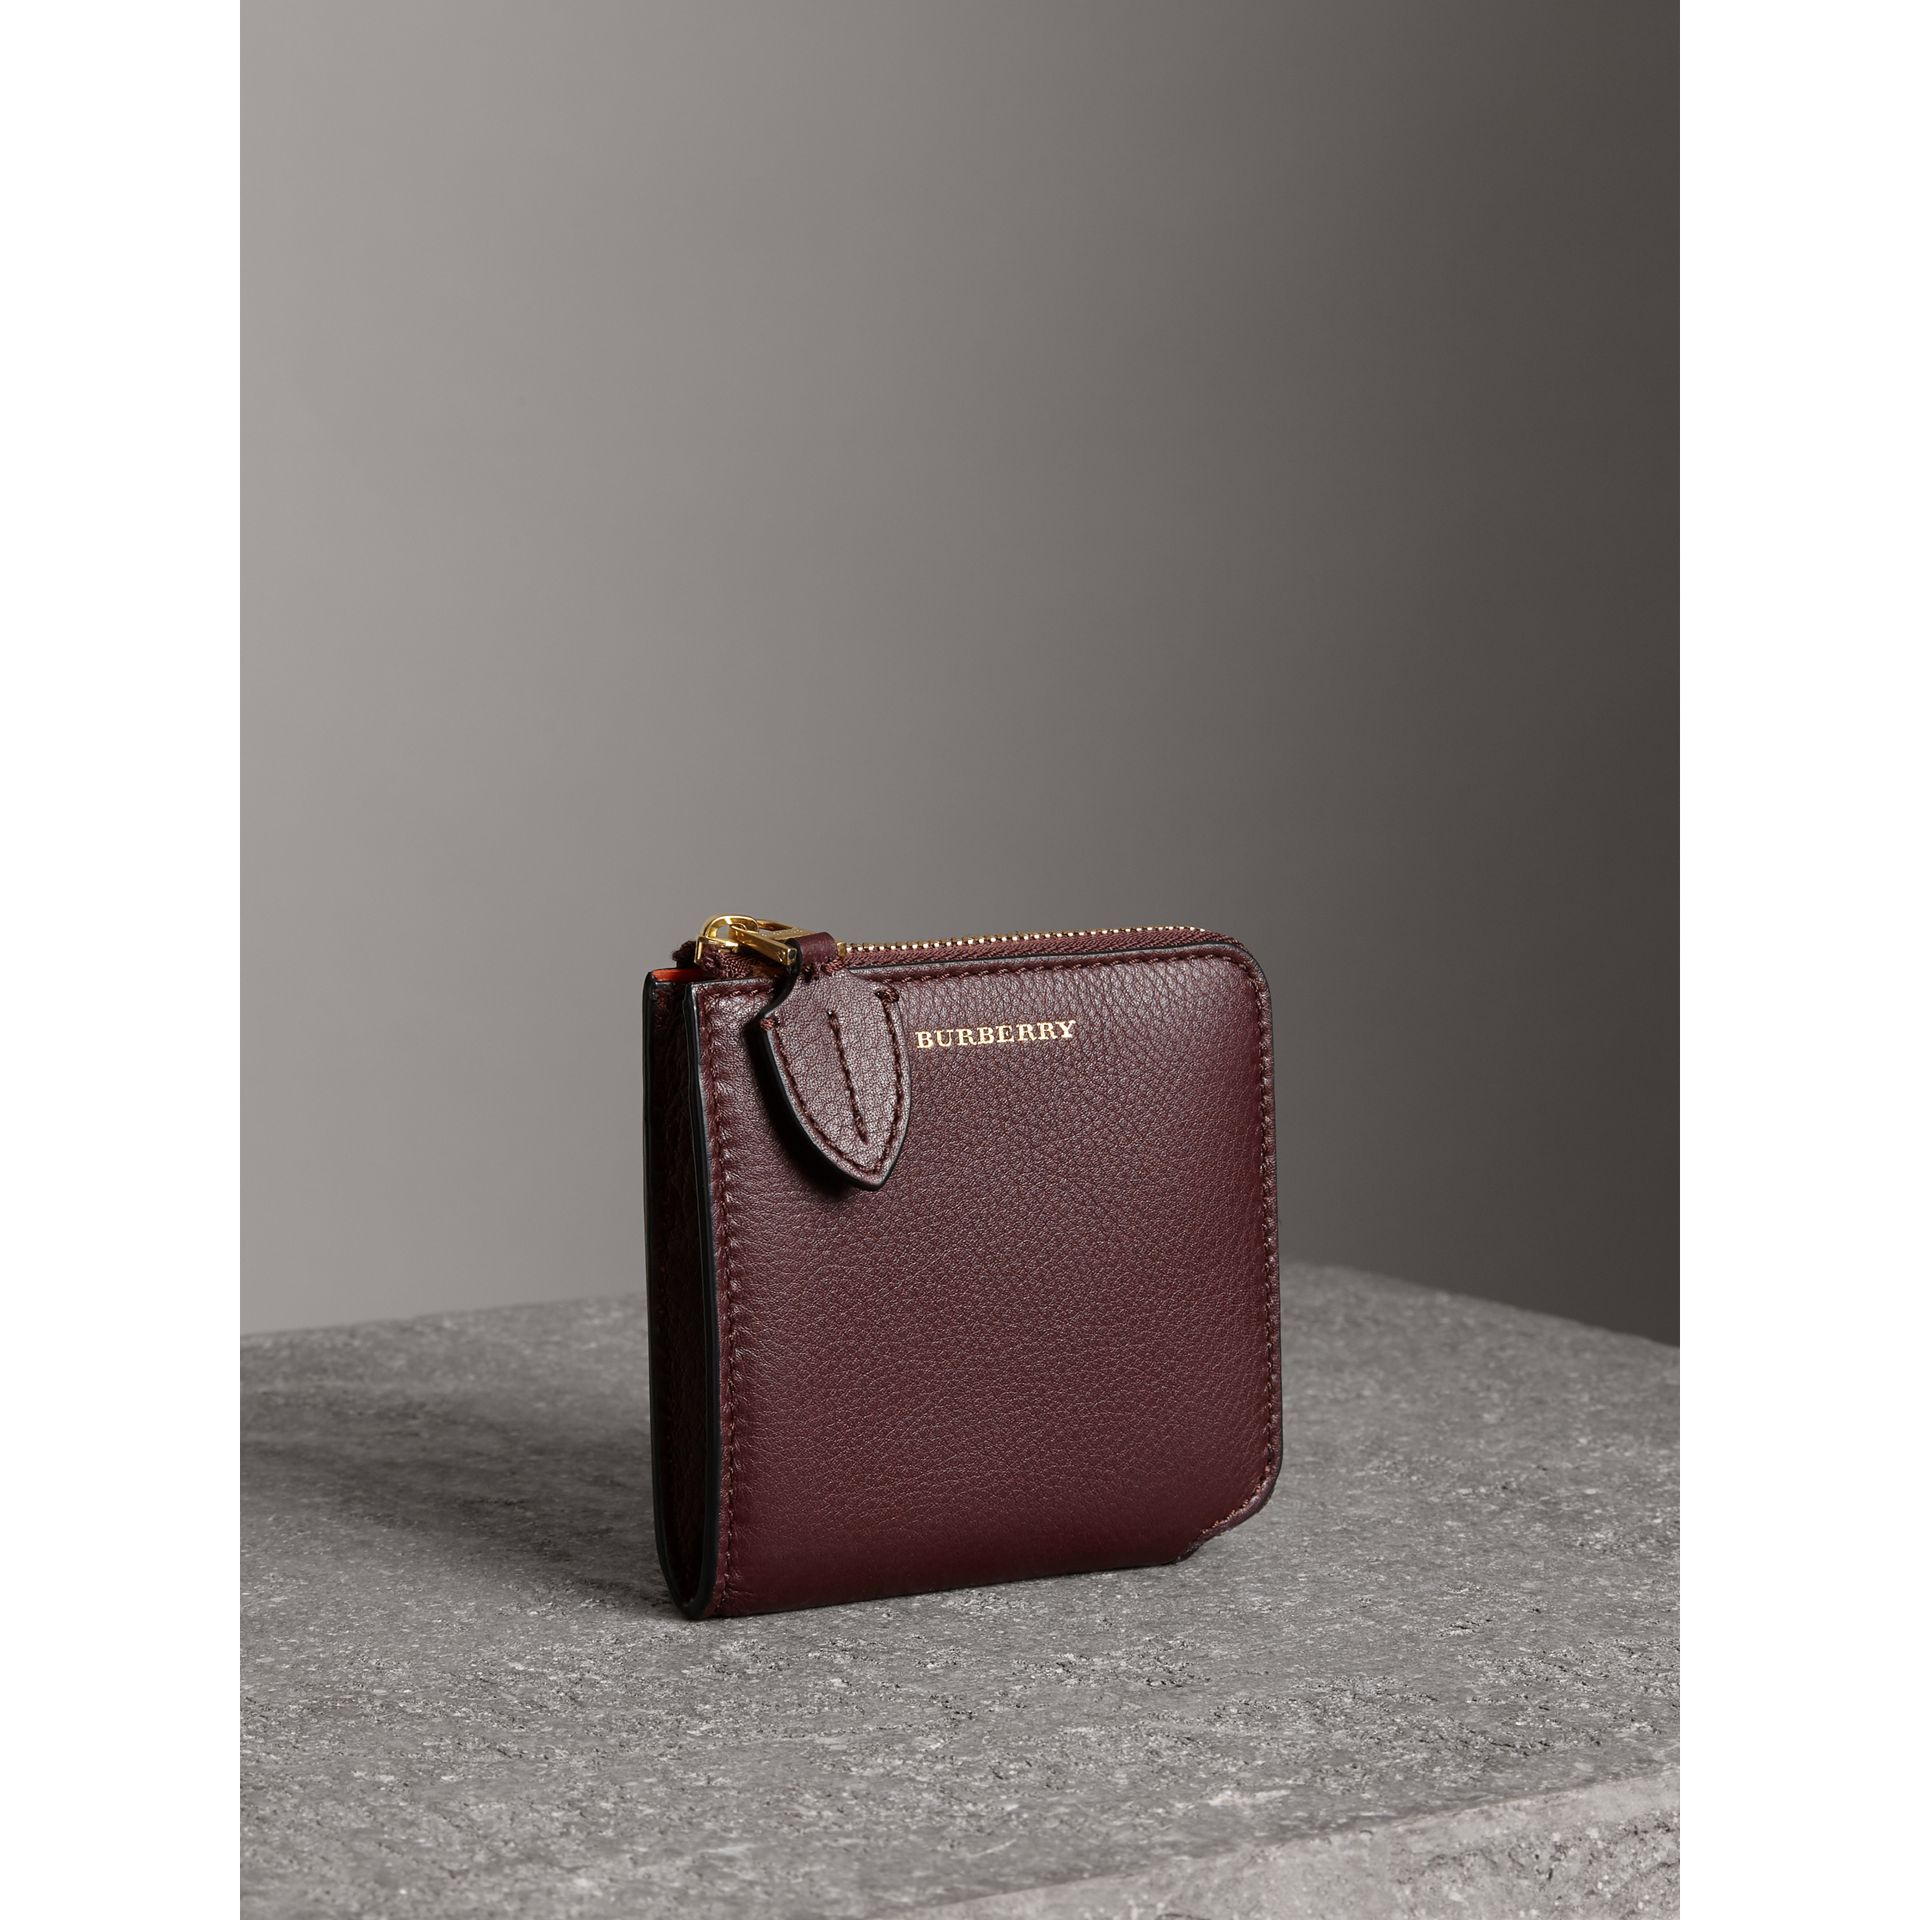 Grainy Leather Square Ziparound Wallet in Deep Claret - Women | Burberry Canada - gallery image 4